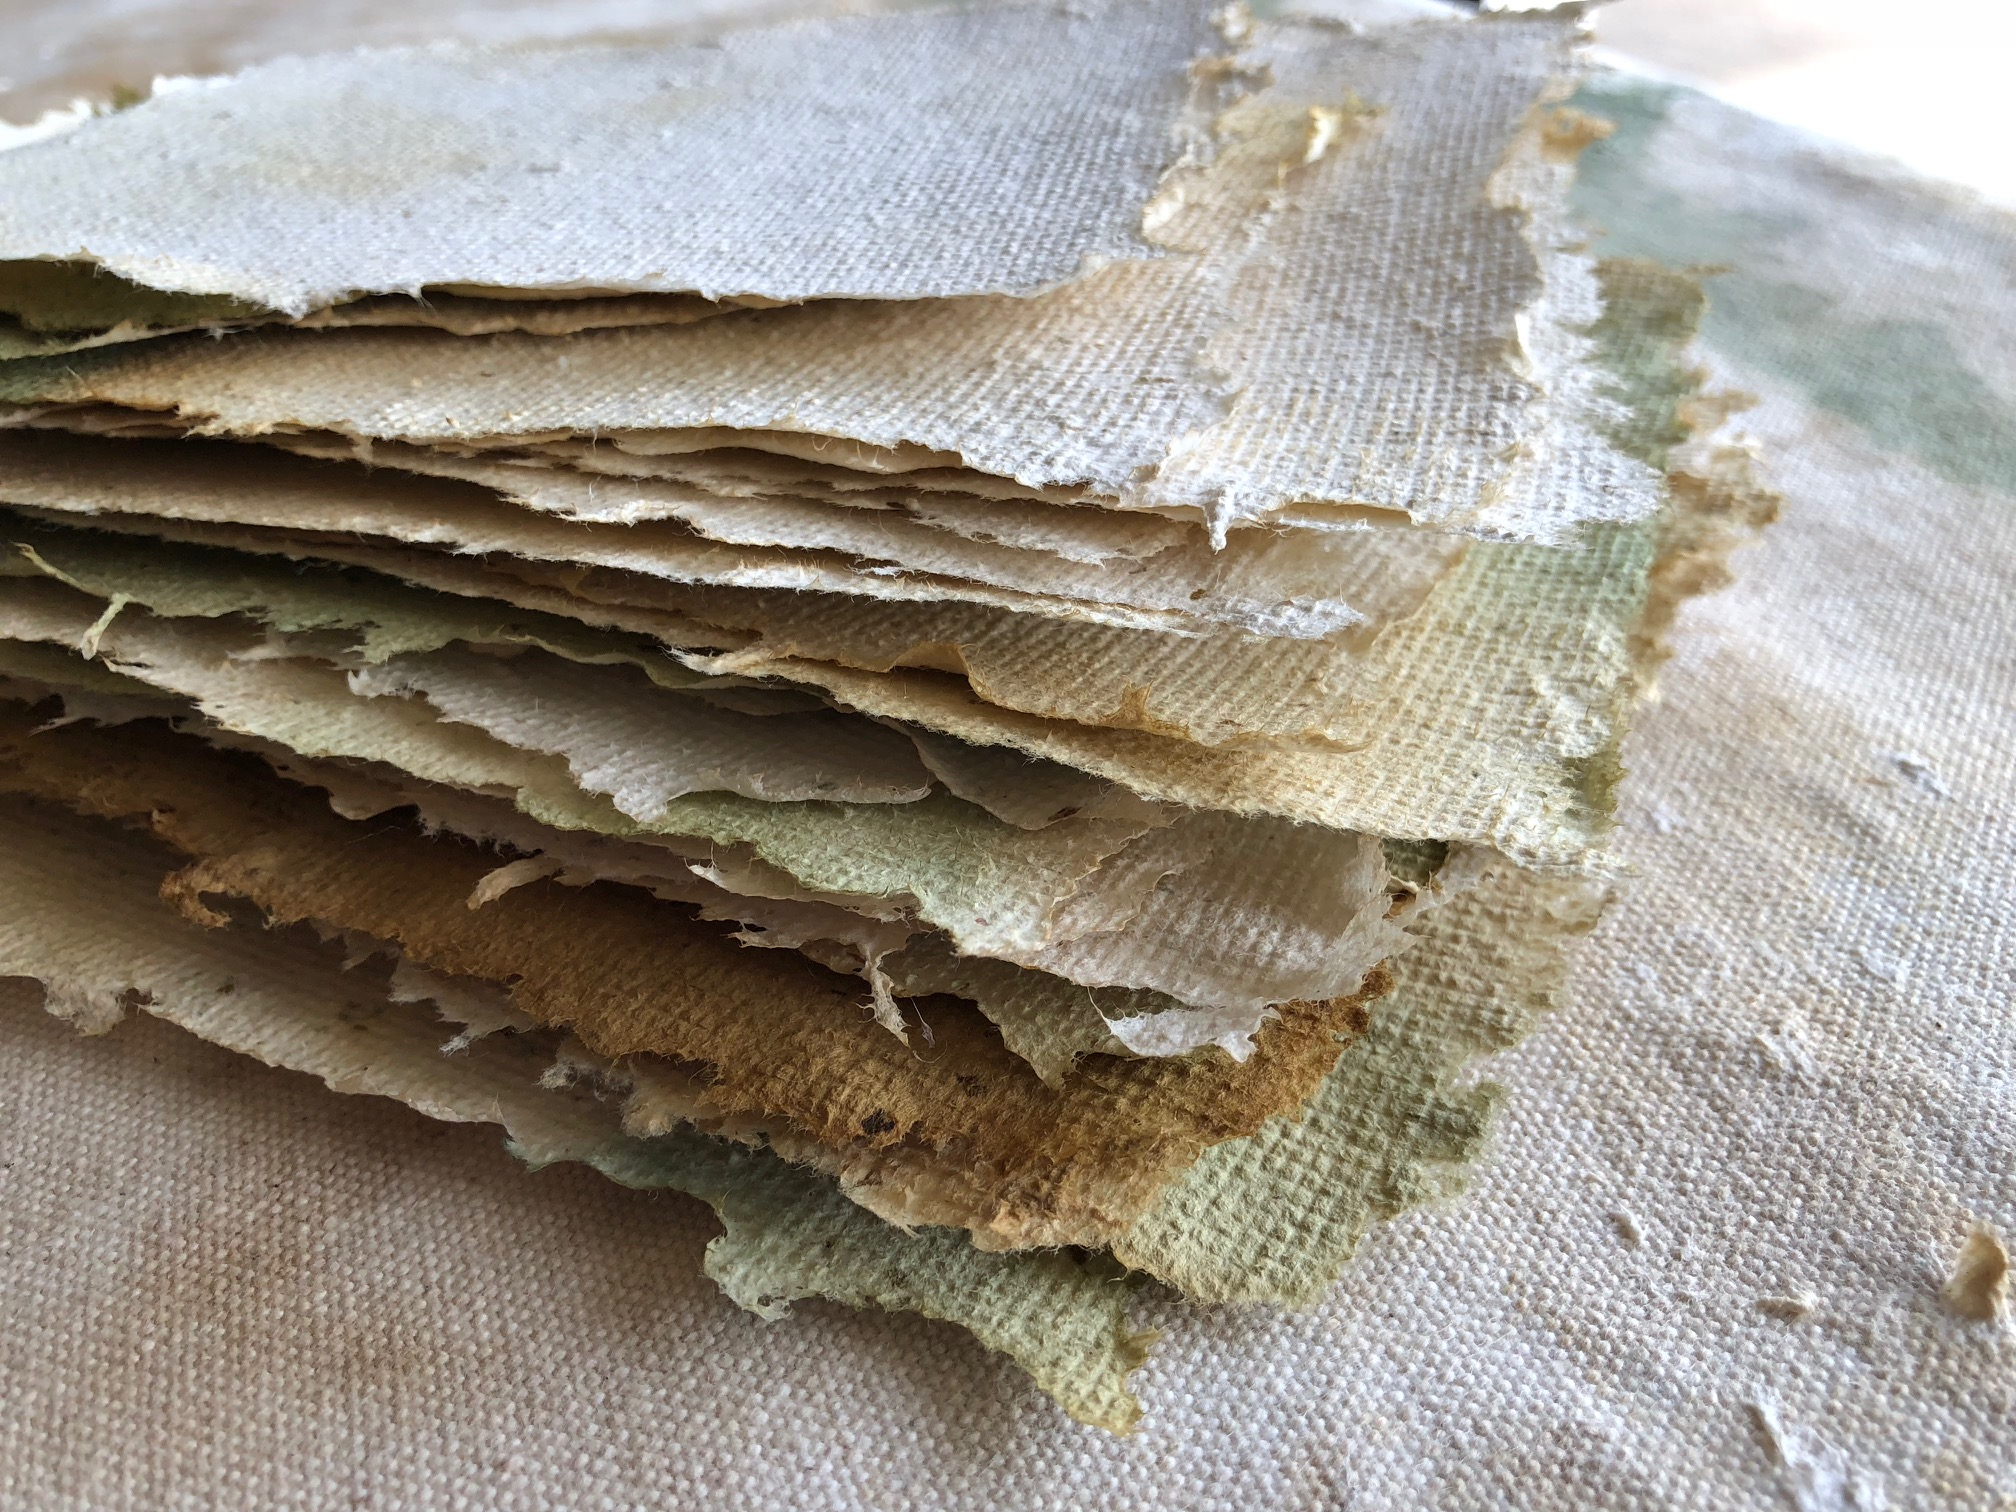 Stack of handmade paper. approximately 6 x 4 inches each. Photo courtesy of the artist.